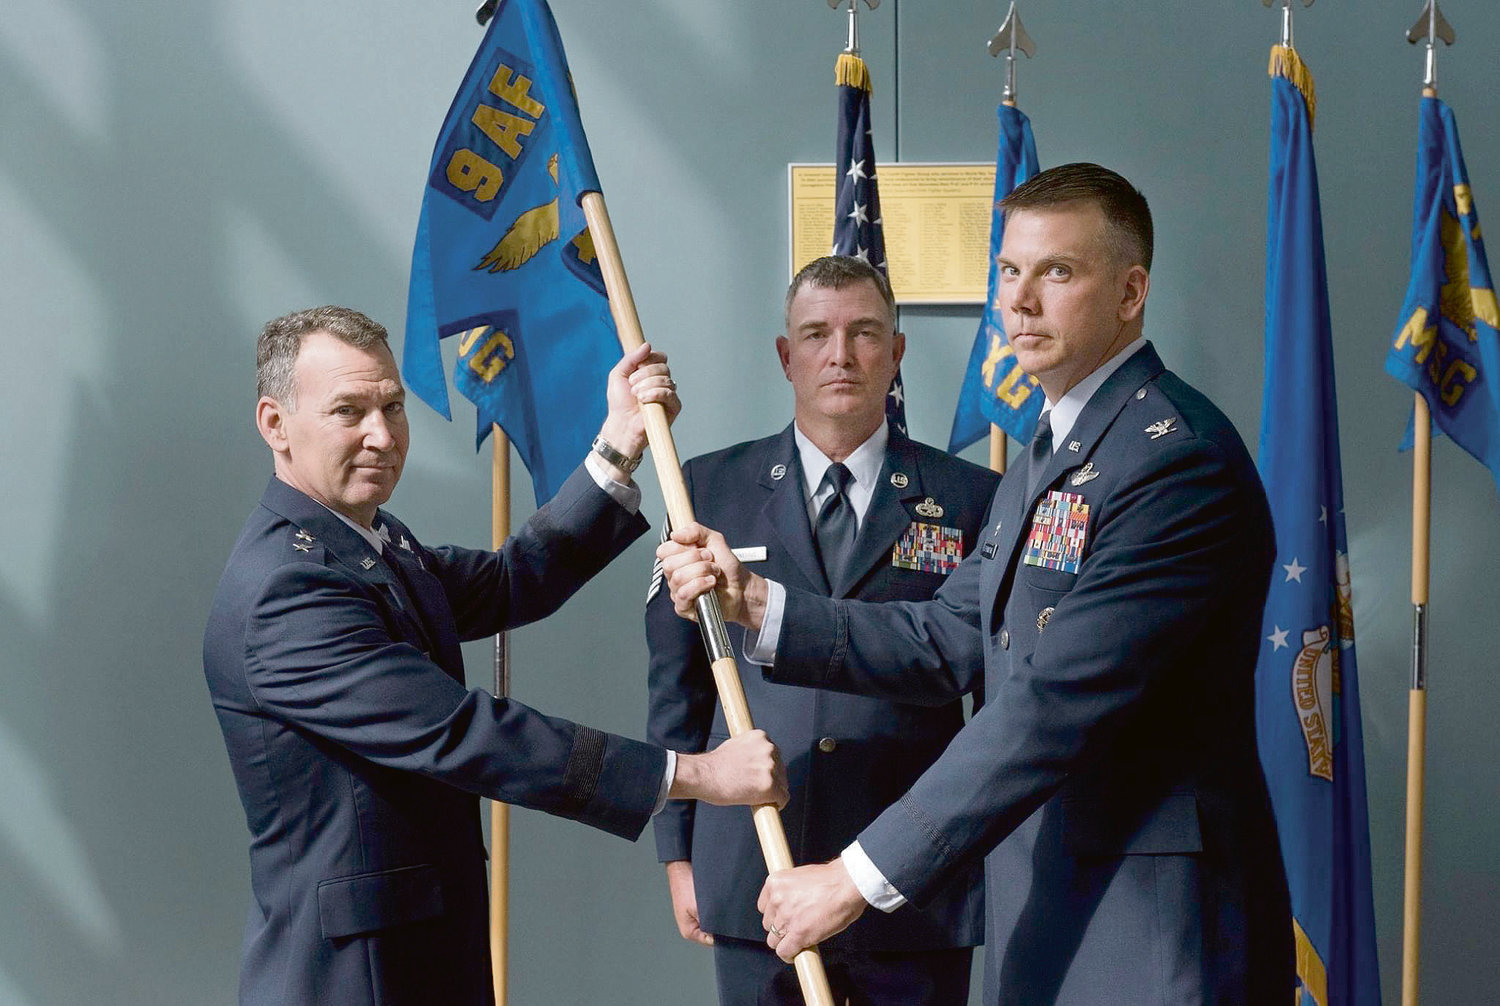 Maj. Gen. Chad P. Franks, Ninth Air Force commander (left), hands the guidon to Col. Kurt C. Helphinstine (right), incoming 4th Fighter Wing commander, during the 4 FW change of command ceremony at Seymour Johnson Air Force Base Thursday. Helphinstine was previously deputy commander for operations at the 366th Fighter Wing in Mountain Home Air Force Base, Idaho.